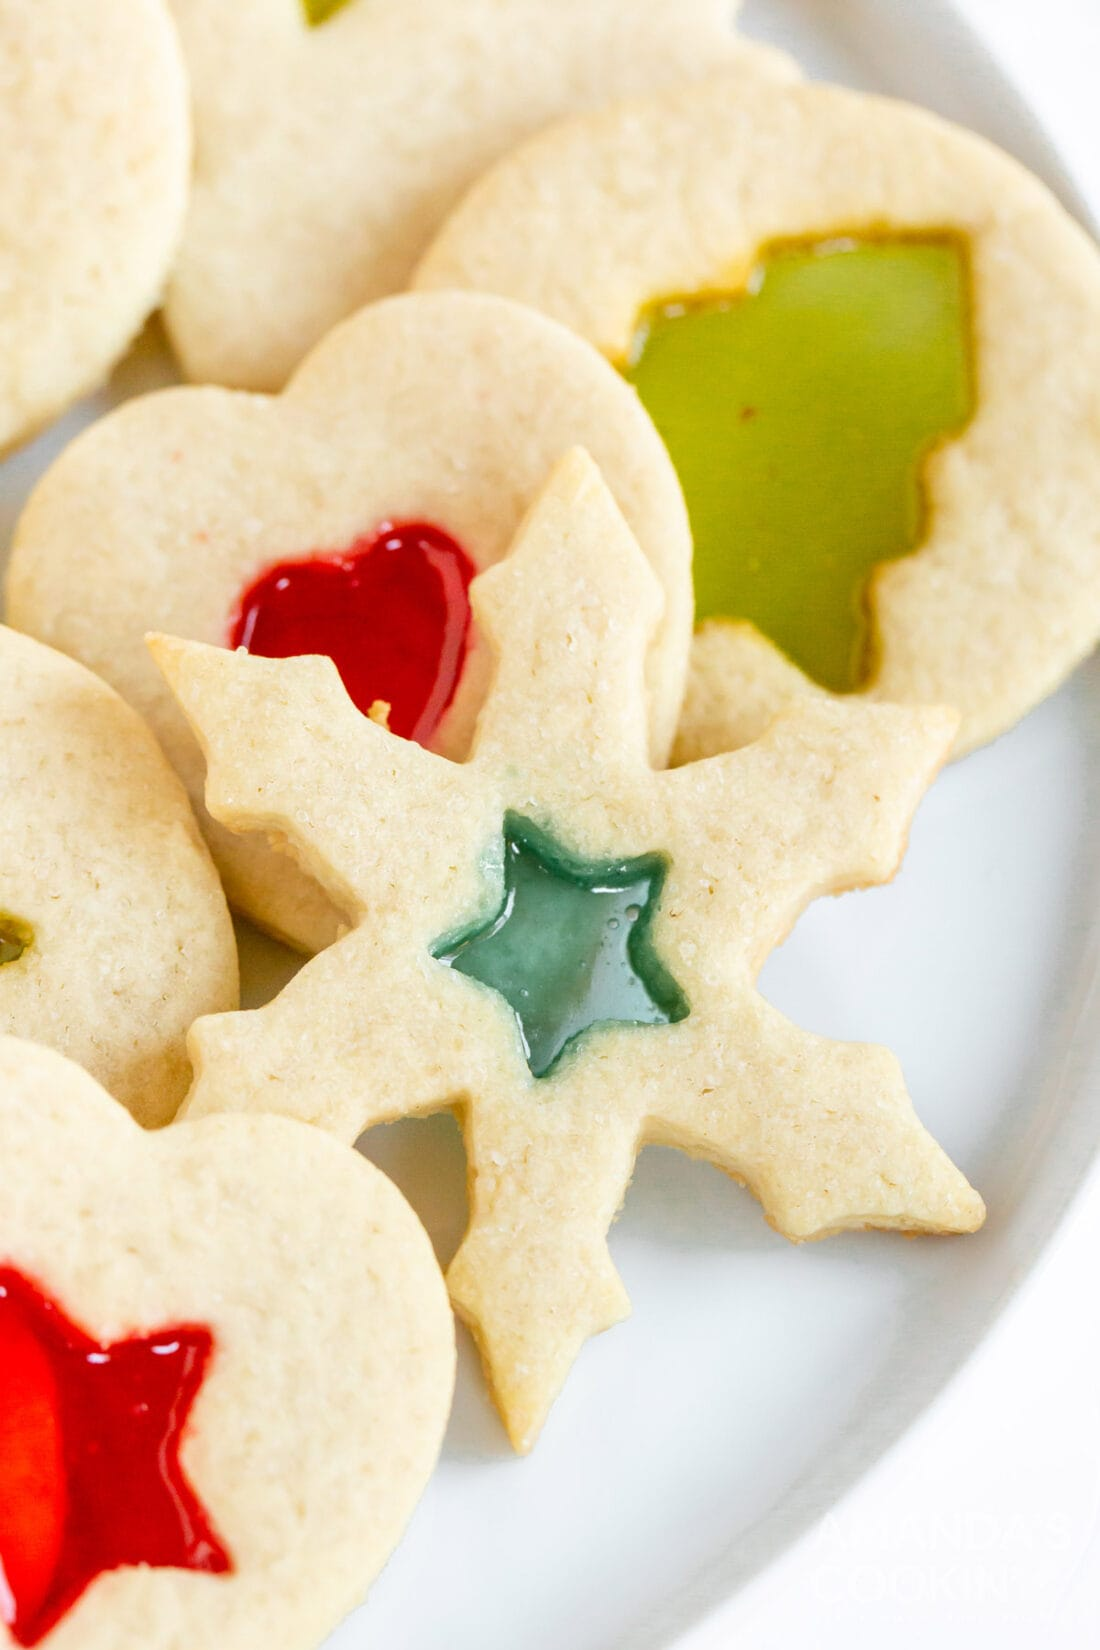 snowflake shaped stained glass cookie